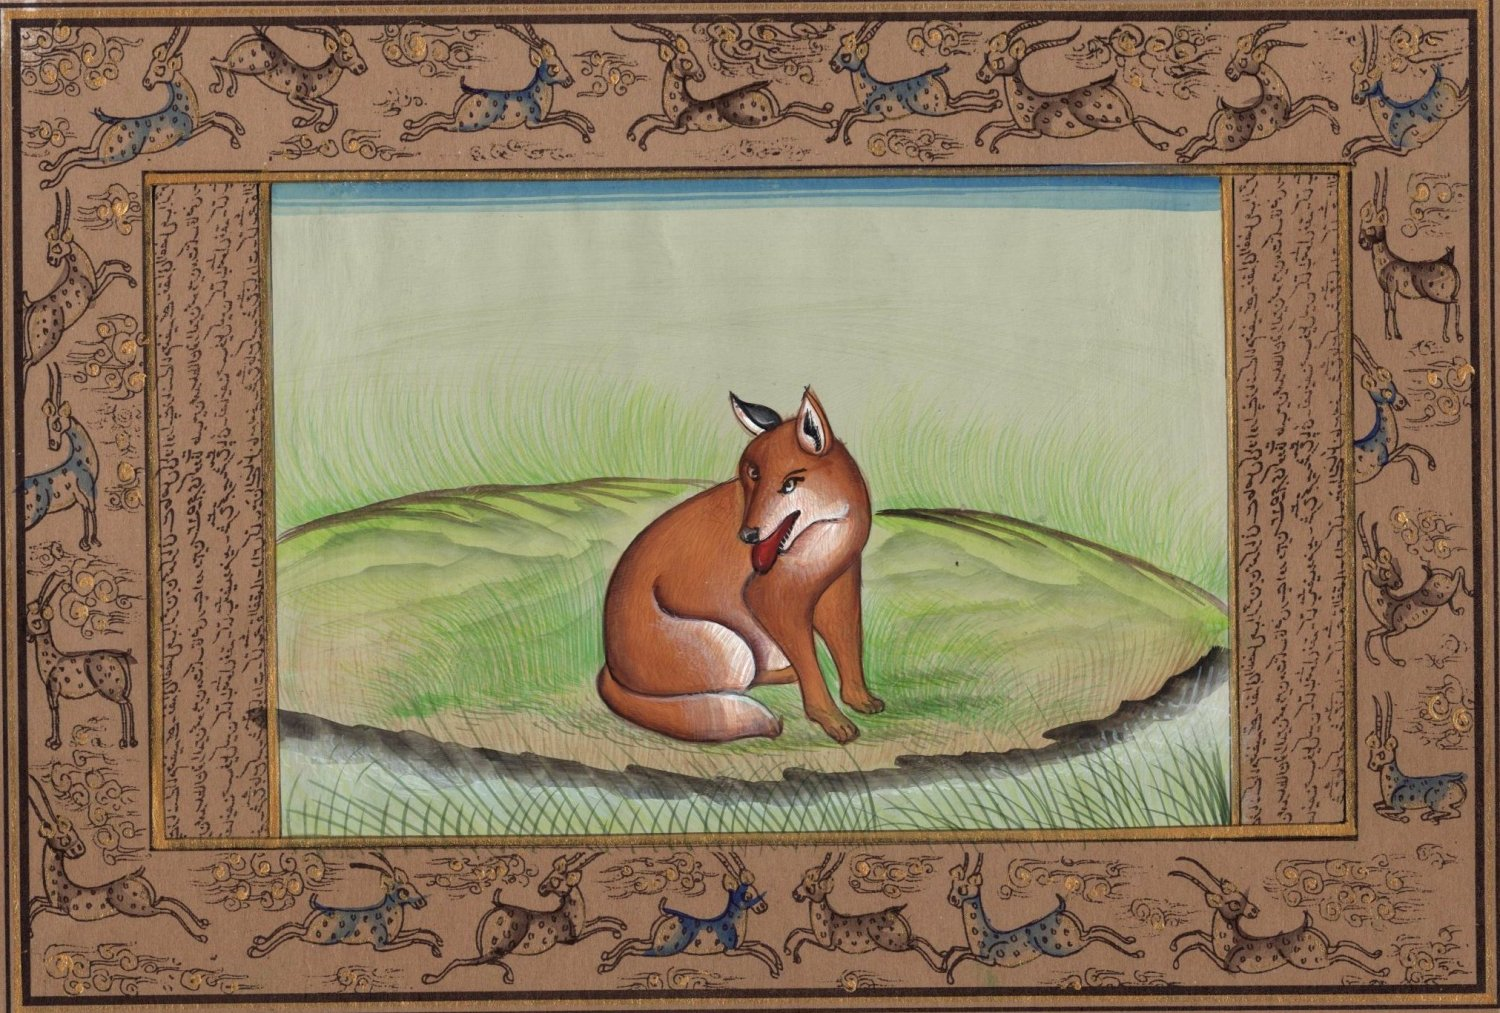 Indian Wild Fox Miniature Painting Handmade Illuminated Manuscript Animal Art